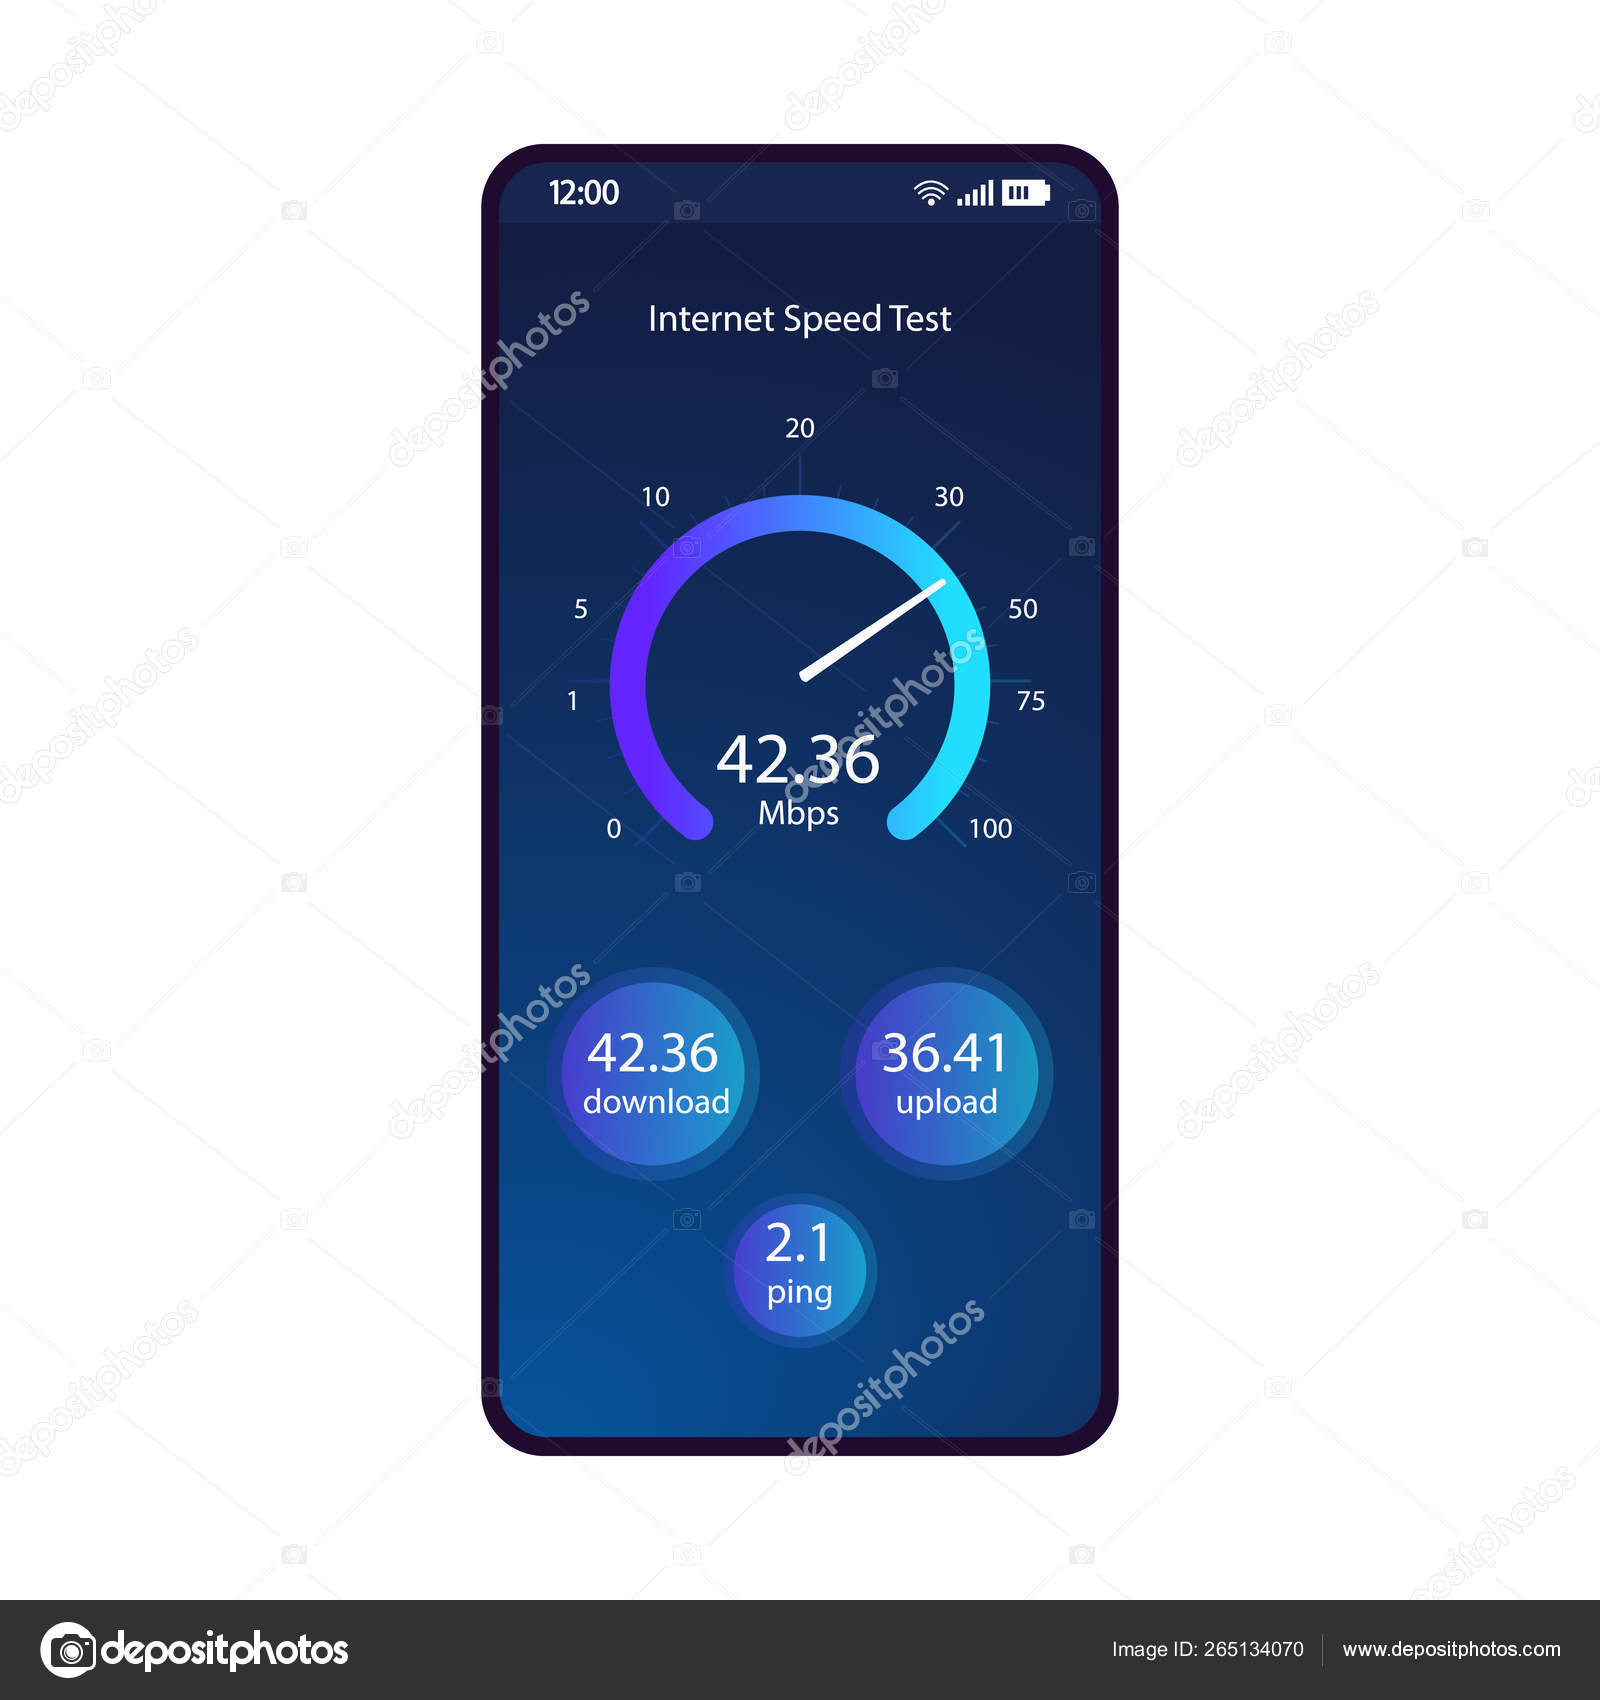 Internet speed test smartphone interface vector template